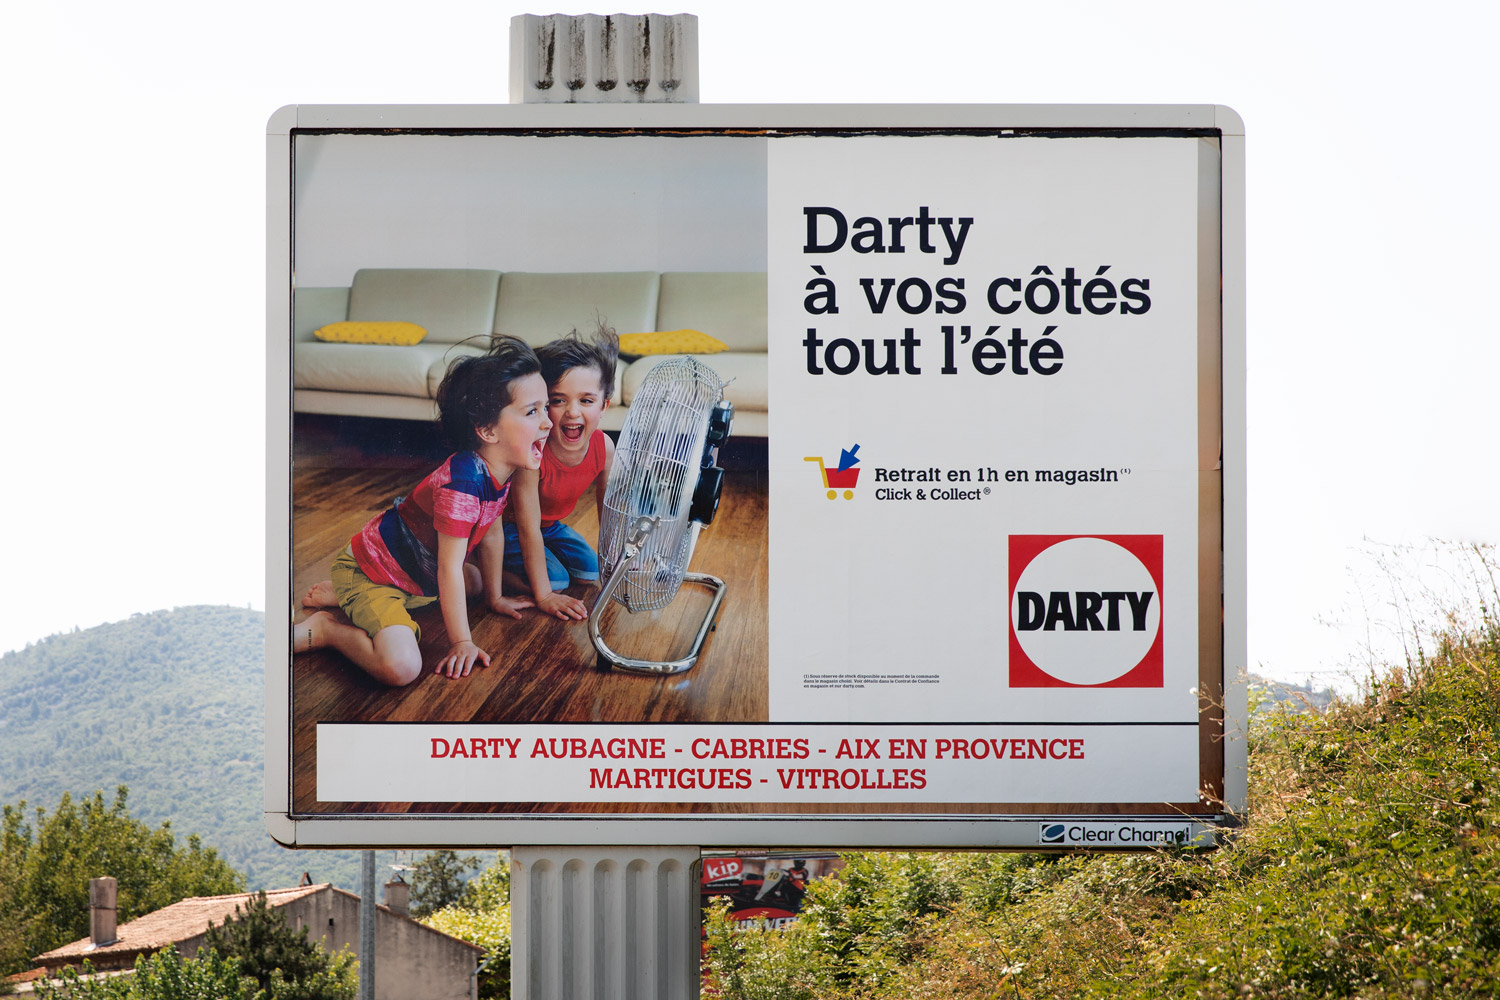 Advertising-kids-photographer-billboard-Darty.jpg